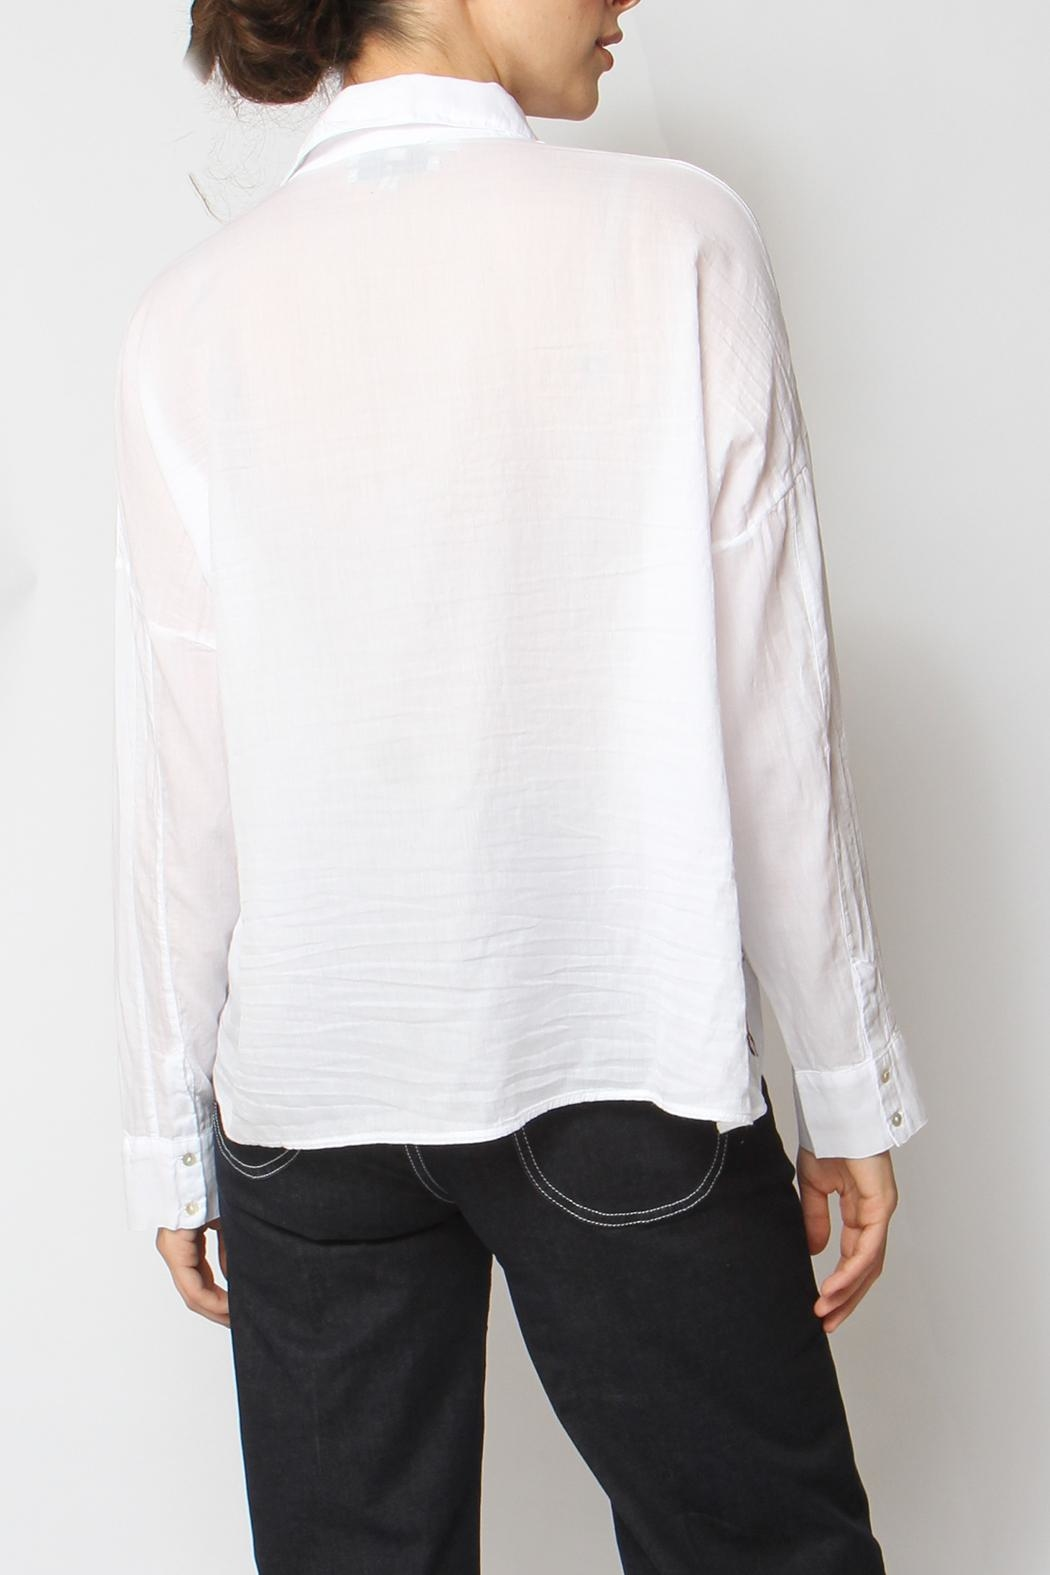 Acoté Embroidered Lady Button-Down - Back Cropped Image